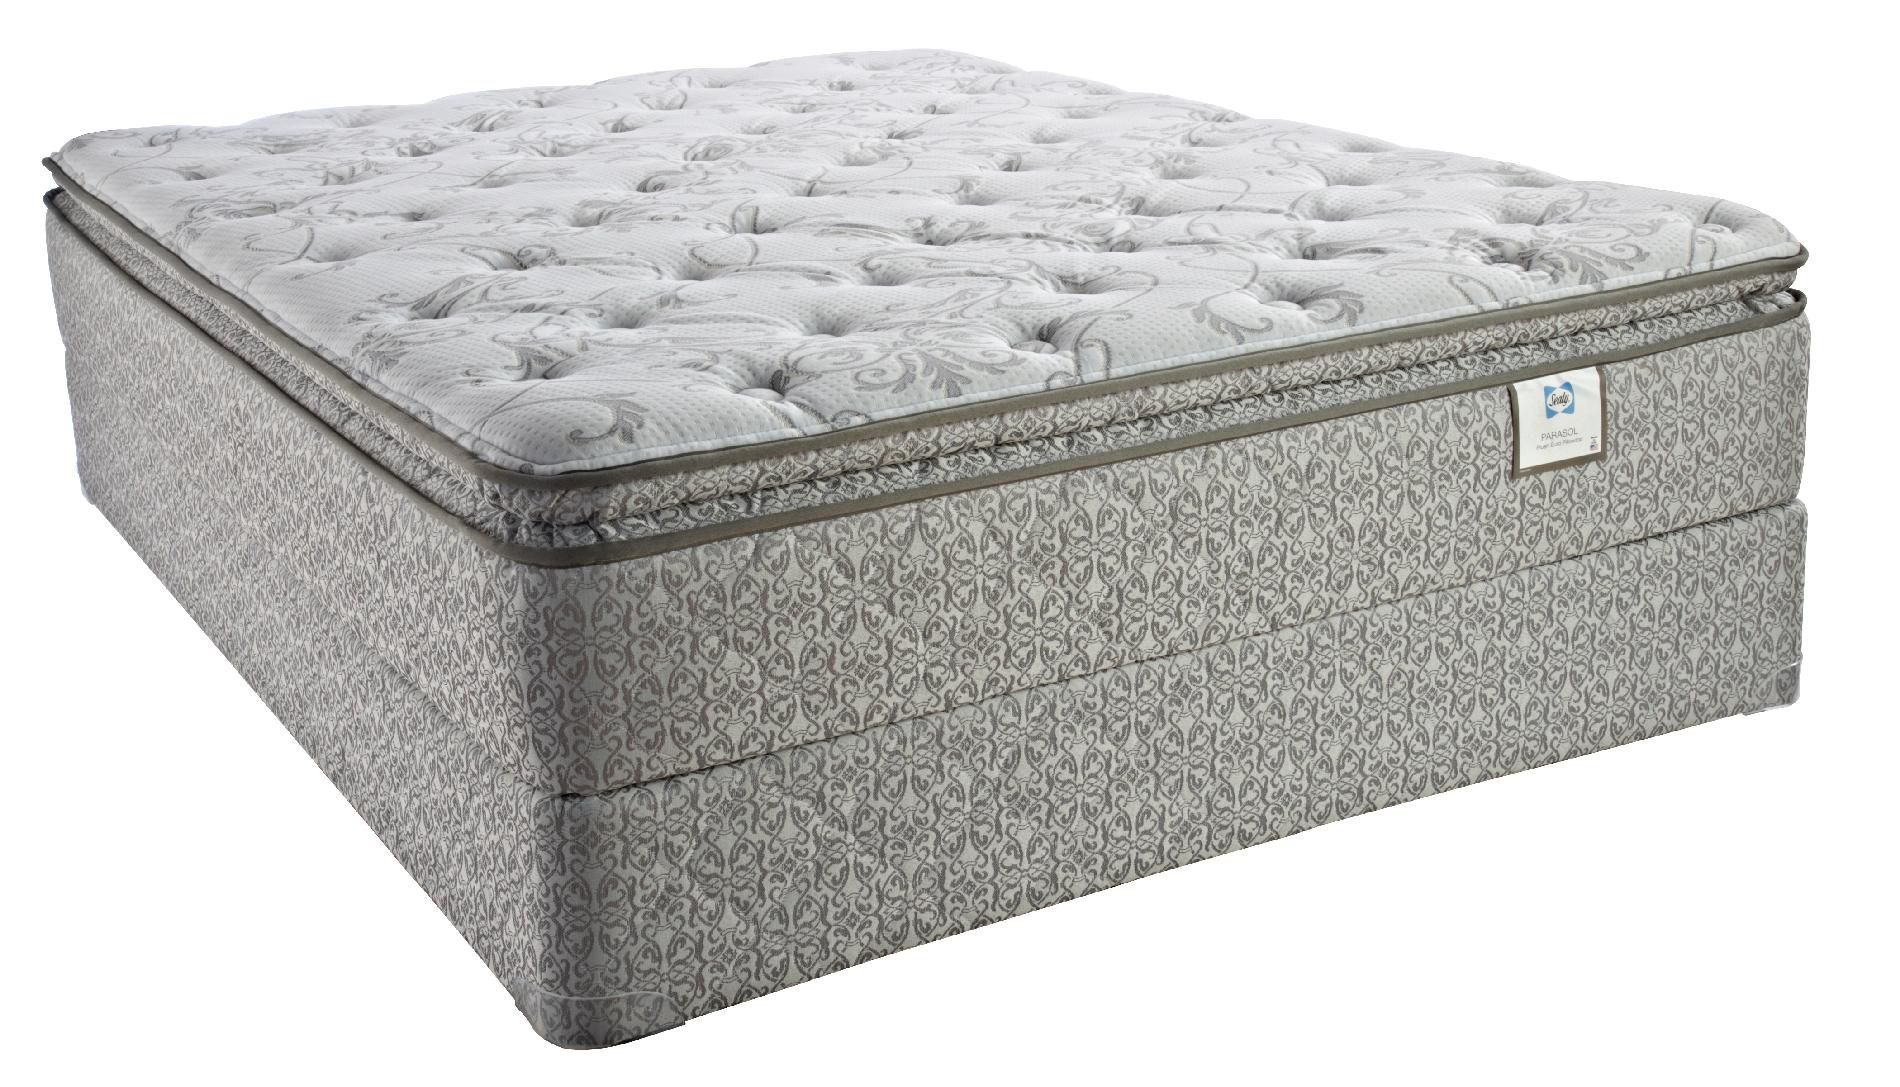 Sealy Patrician Select Plush Euro Pillowtop Full Mattress Only